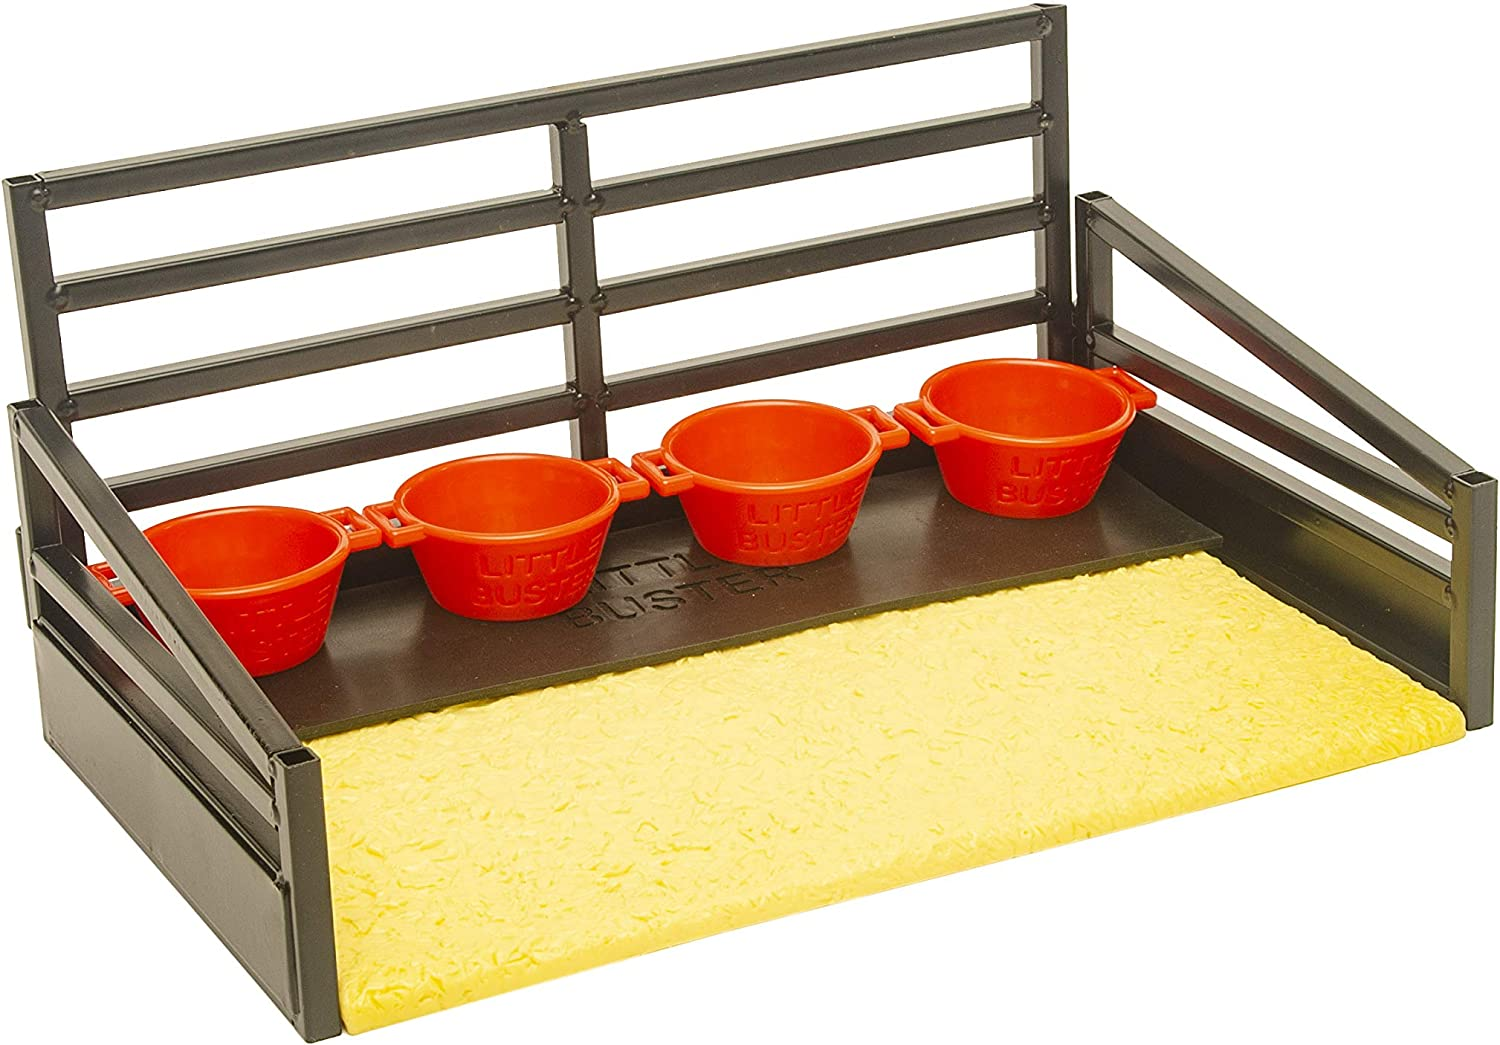 4 Red Feed Pans Matt Little Buster Toys Show Cattle Accessories Kit Shavings Bed